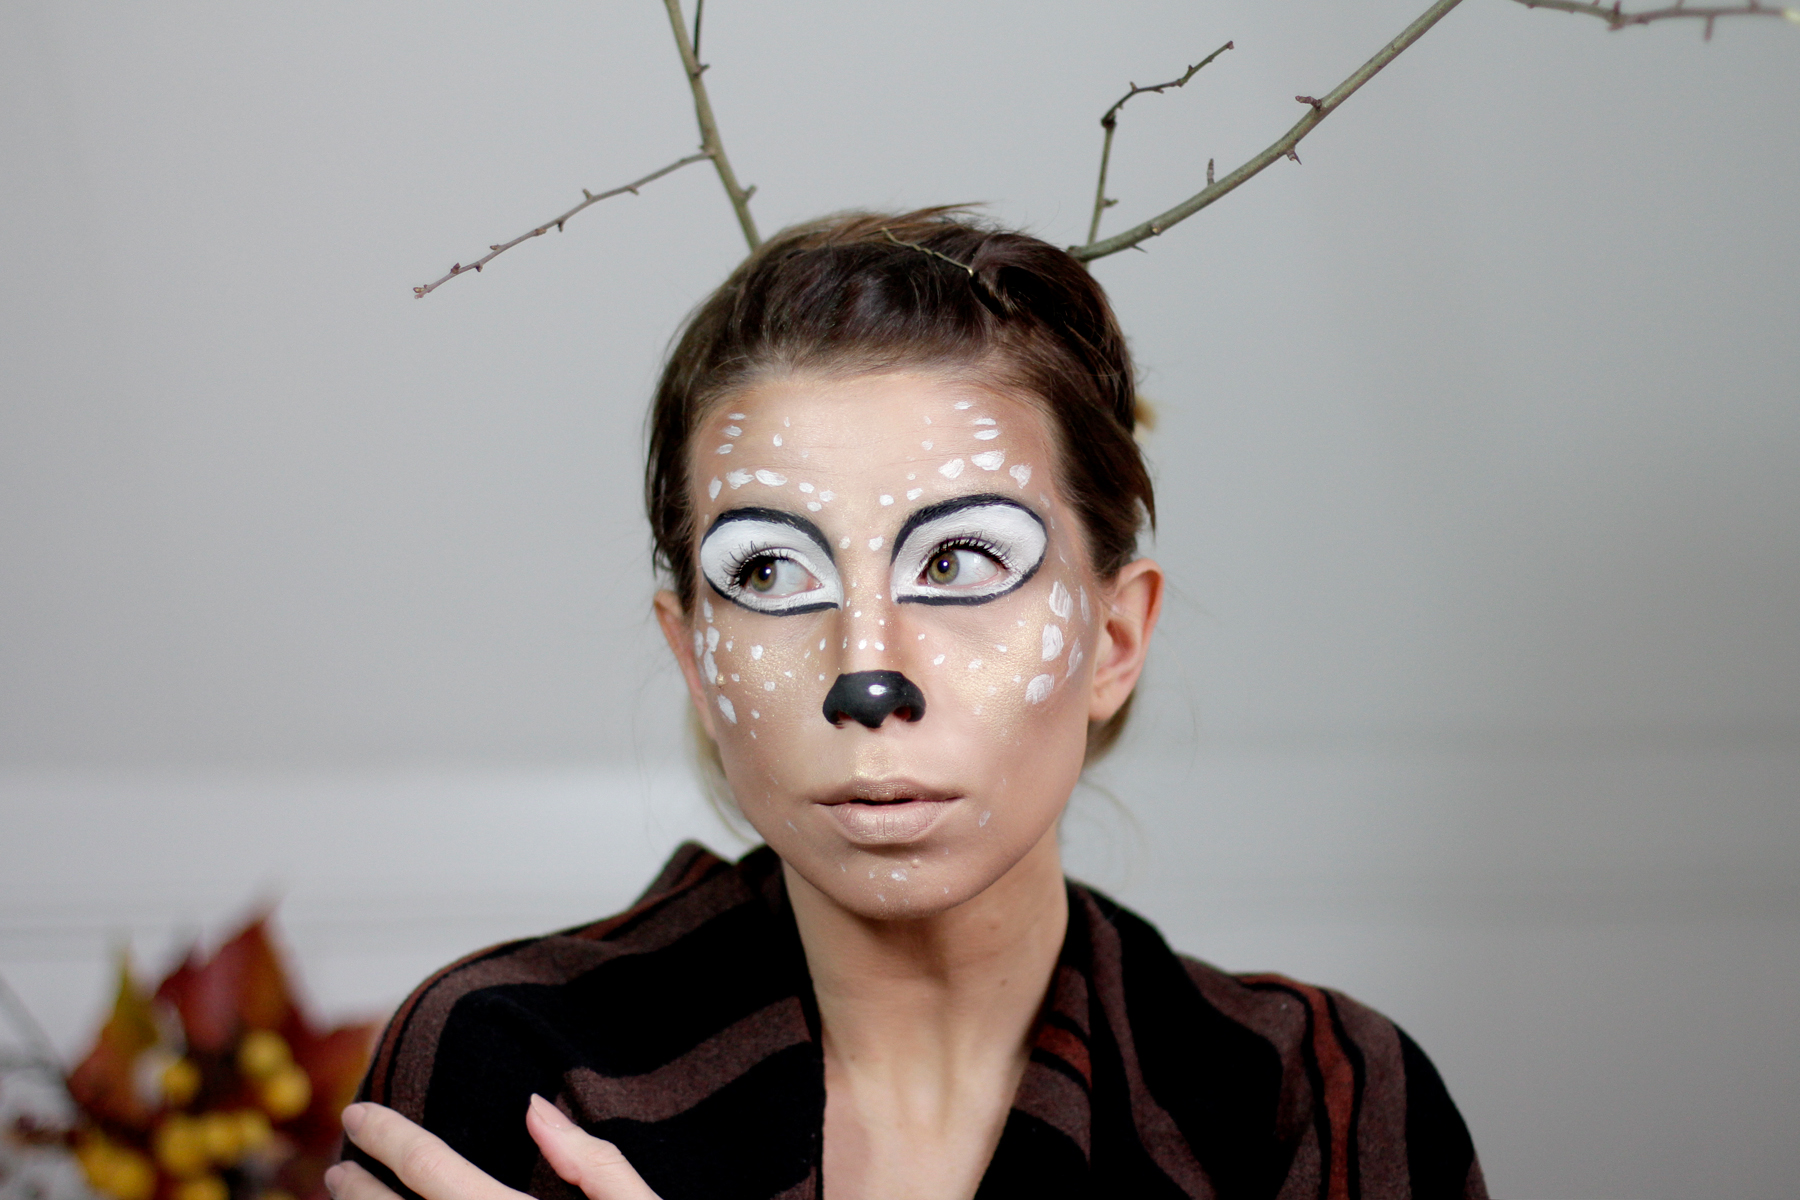 halloween bambi deer make up styling idea tutorial how to schminken grusel scary cats & dogs beauty blog beautyblogger ricarda schernus 5